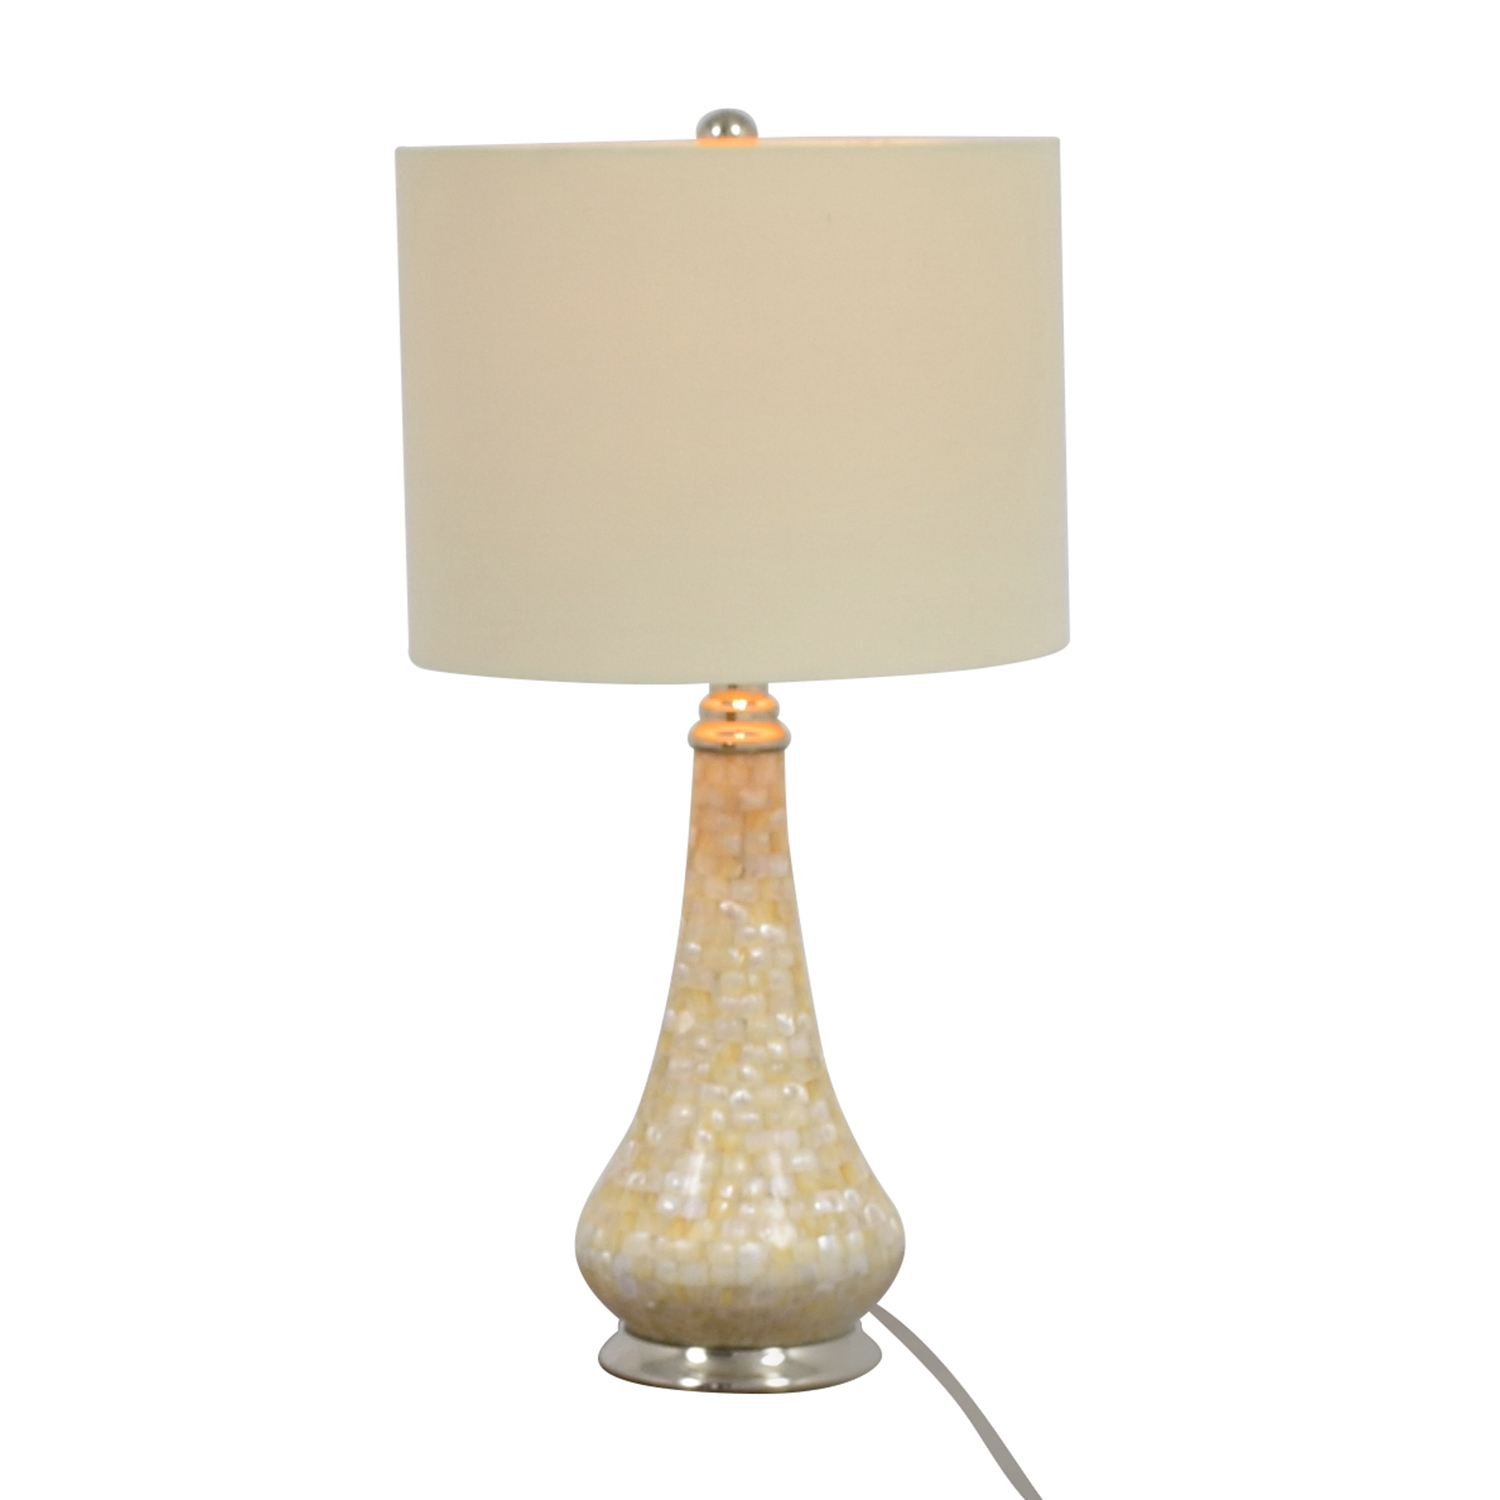 Pier 1 Imports Pier 1 Imports Mother-of-Pearl Accent Lamp for sale